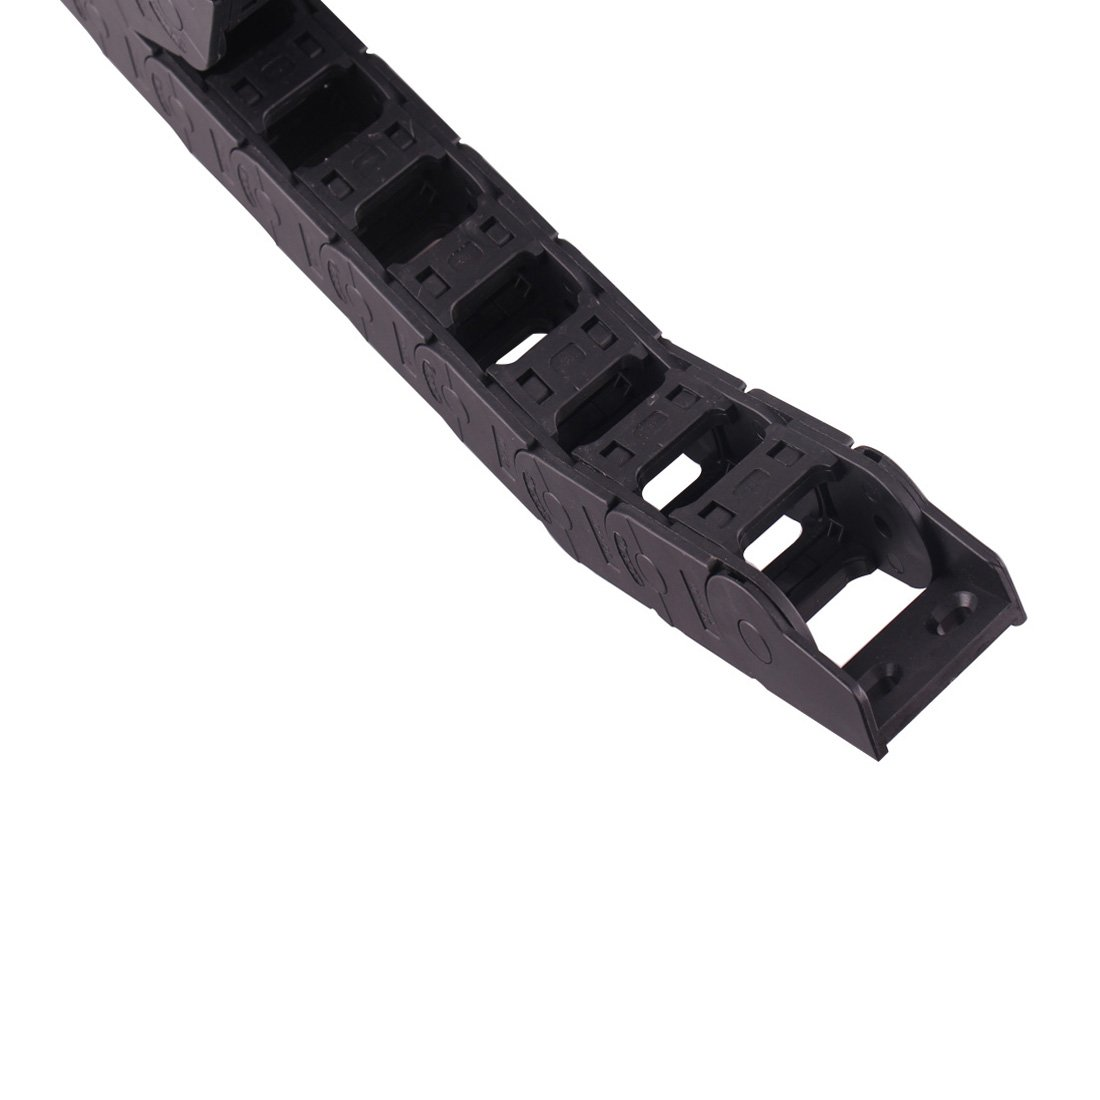 1M Long Black CNC Machine Tool Cable Wire Carrier Drag Chain Nested 25mm x 38mm Ted Lele Cable Drag Chain 25mm x 38mm